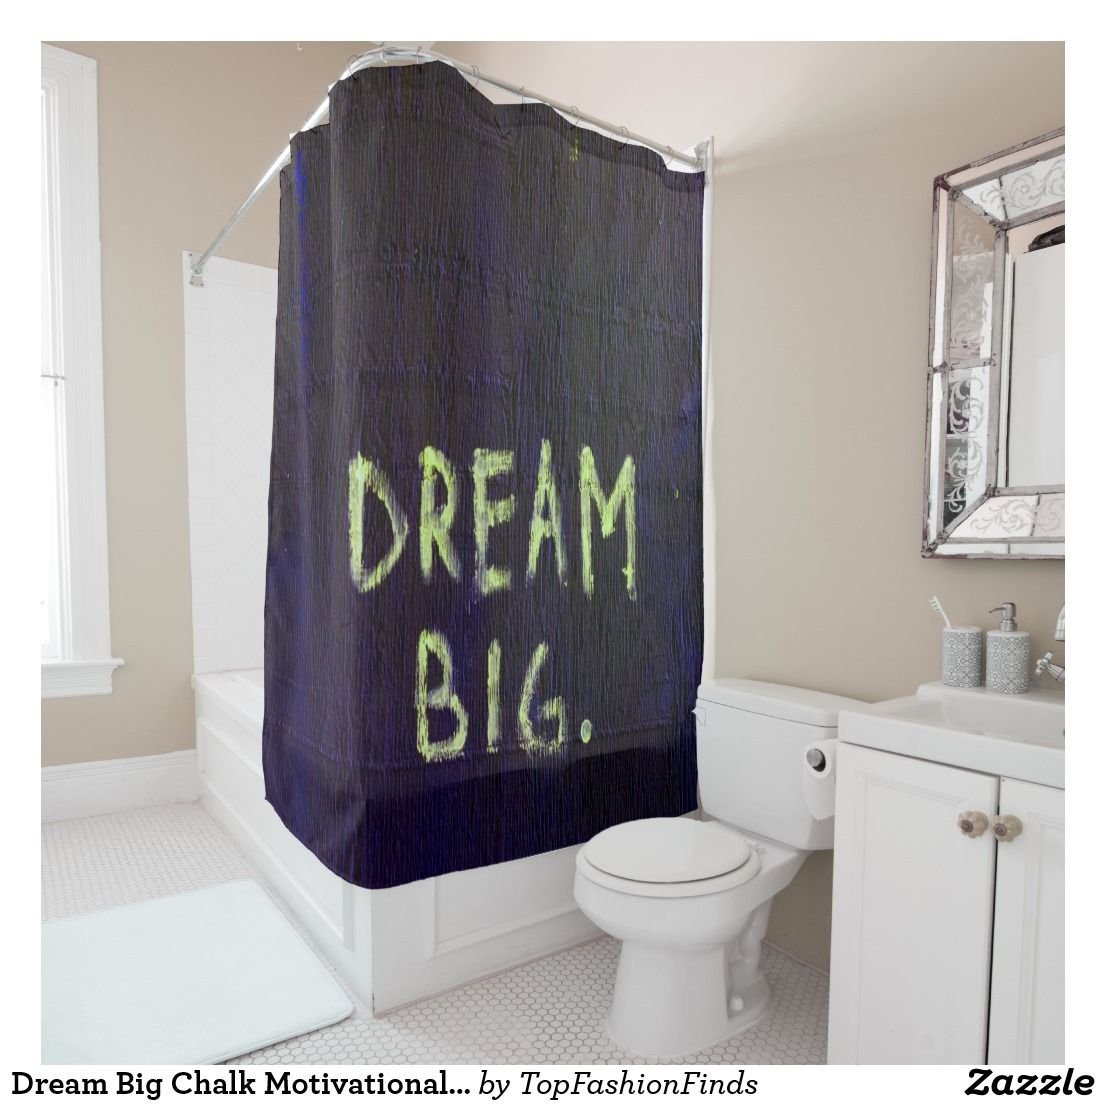 Dream Big Chalk Motivational Inspirational Shower Curtain Zazzle Com With Images Shower Curtain Dream Big Custom Shower Curtains